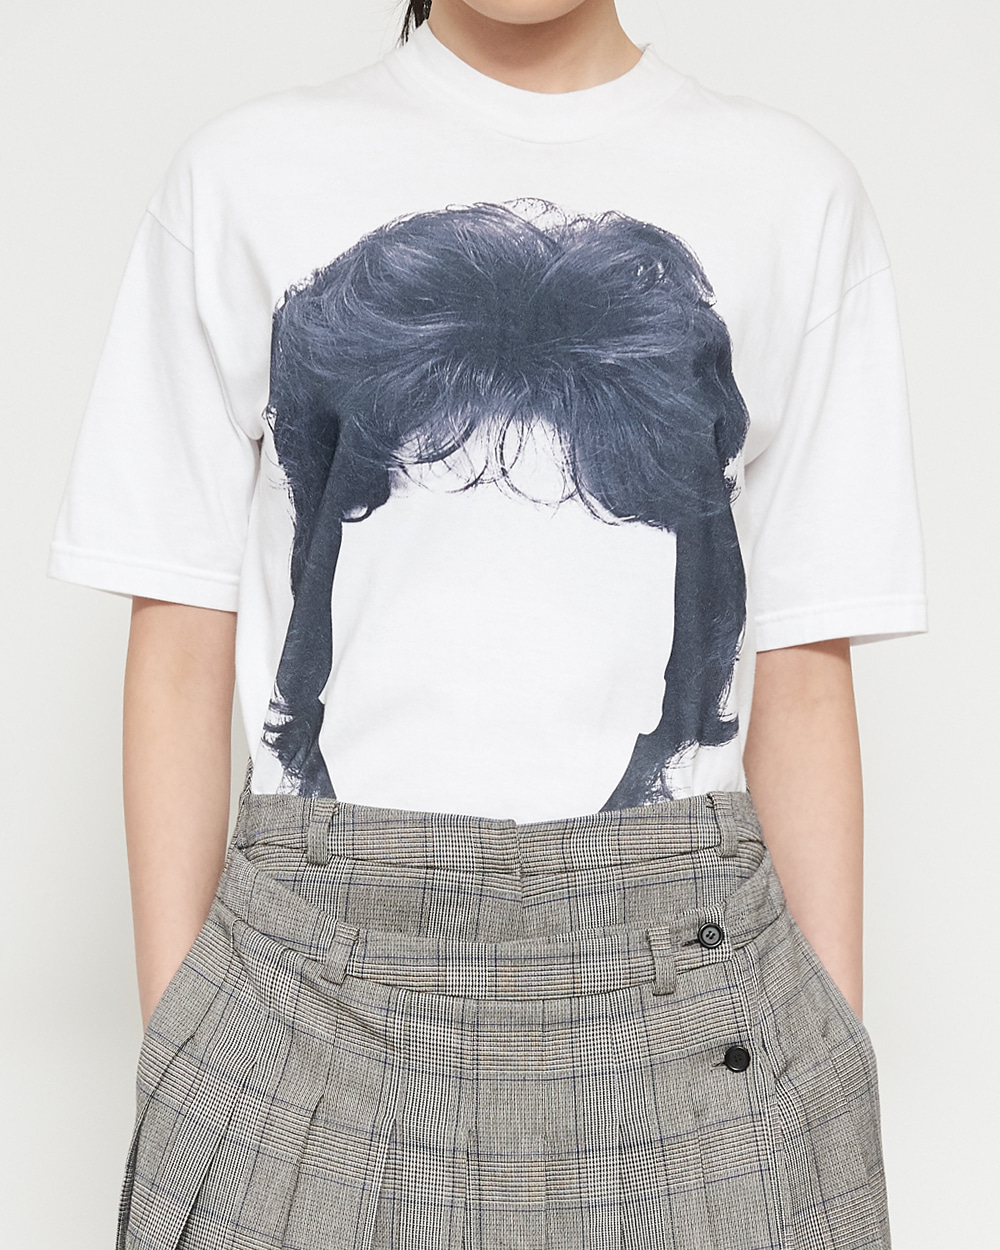 BLACK HAIR T-SHIRT